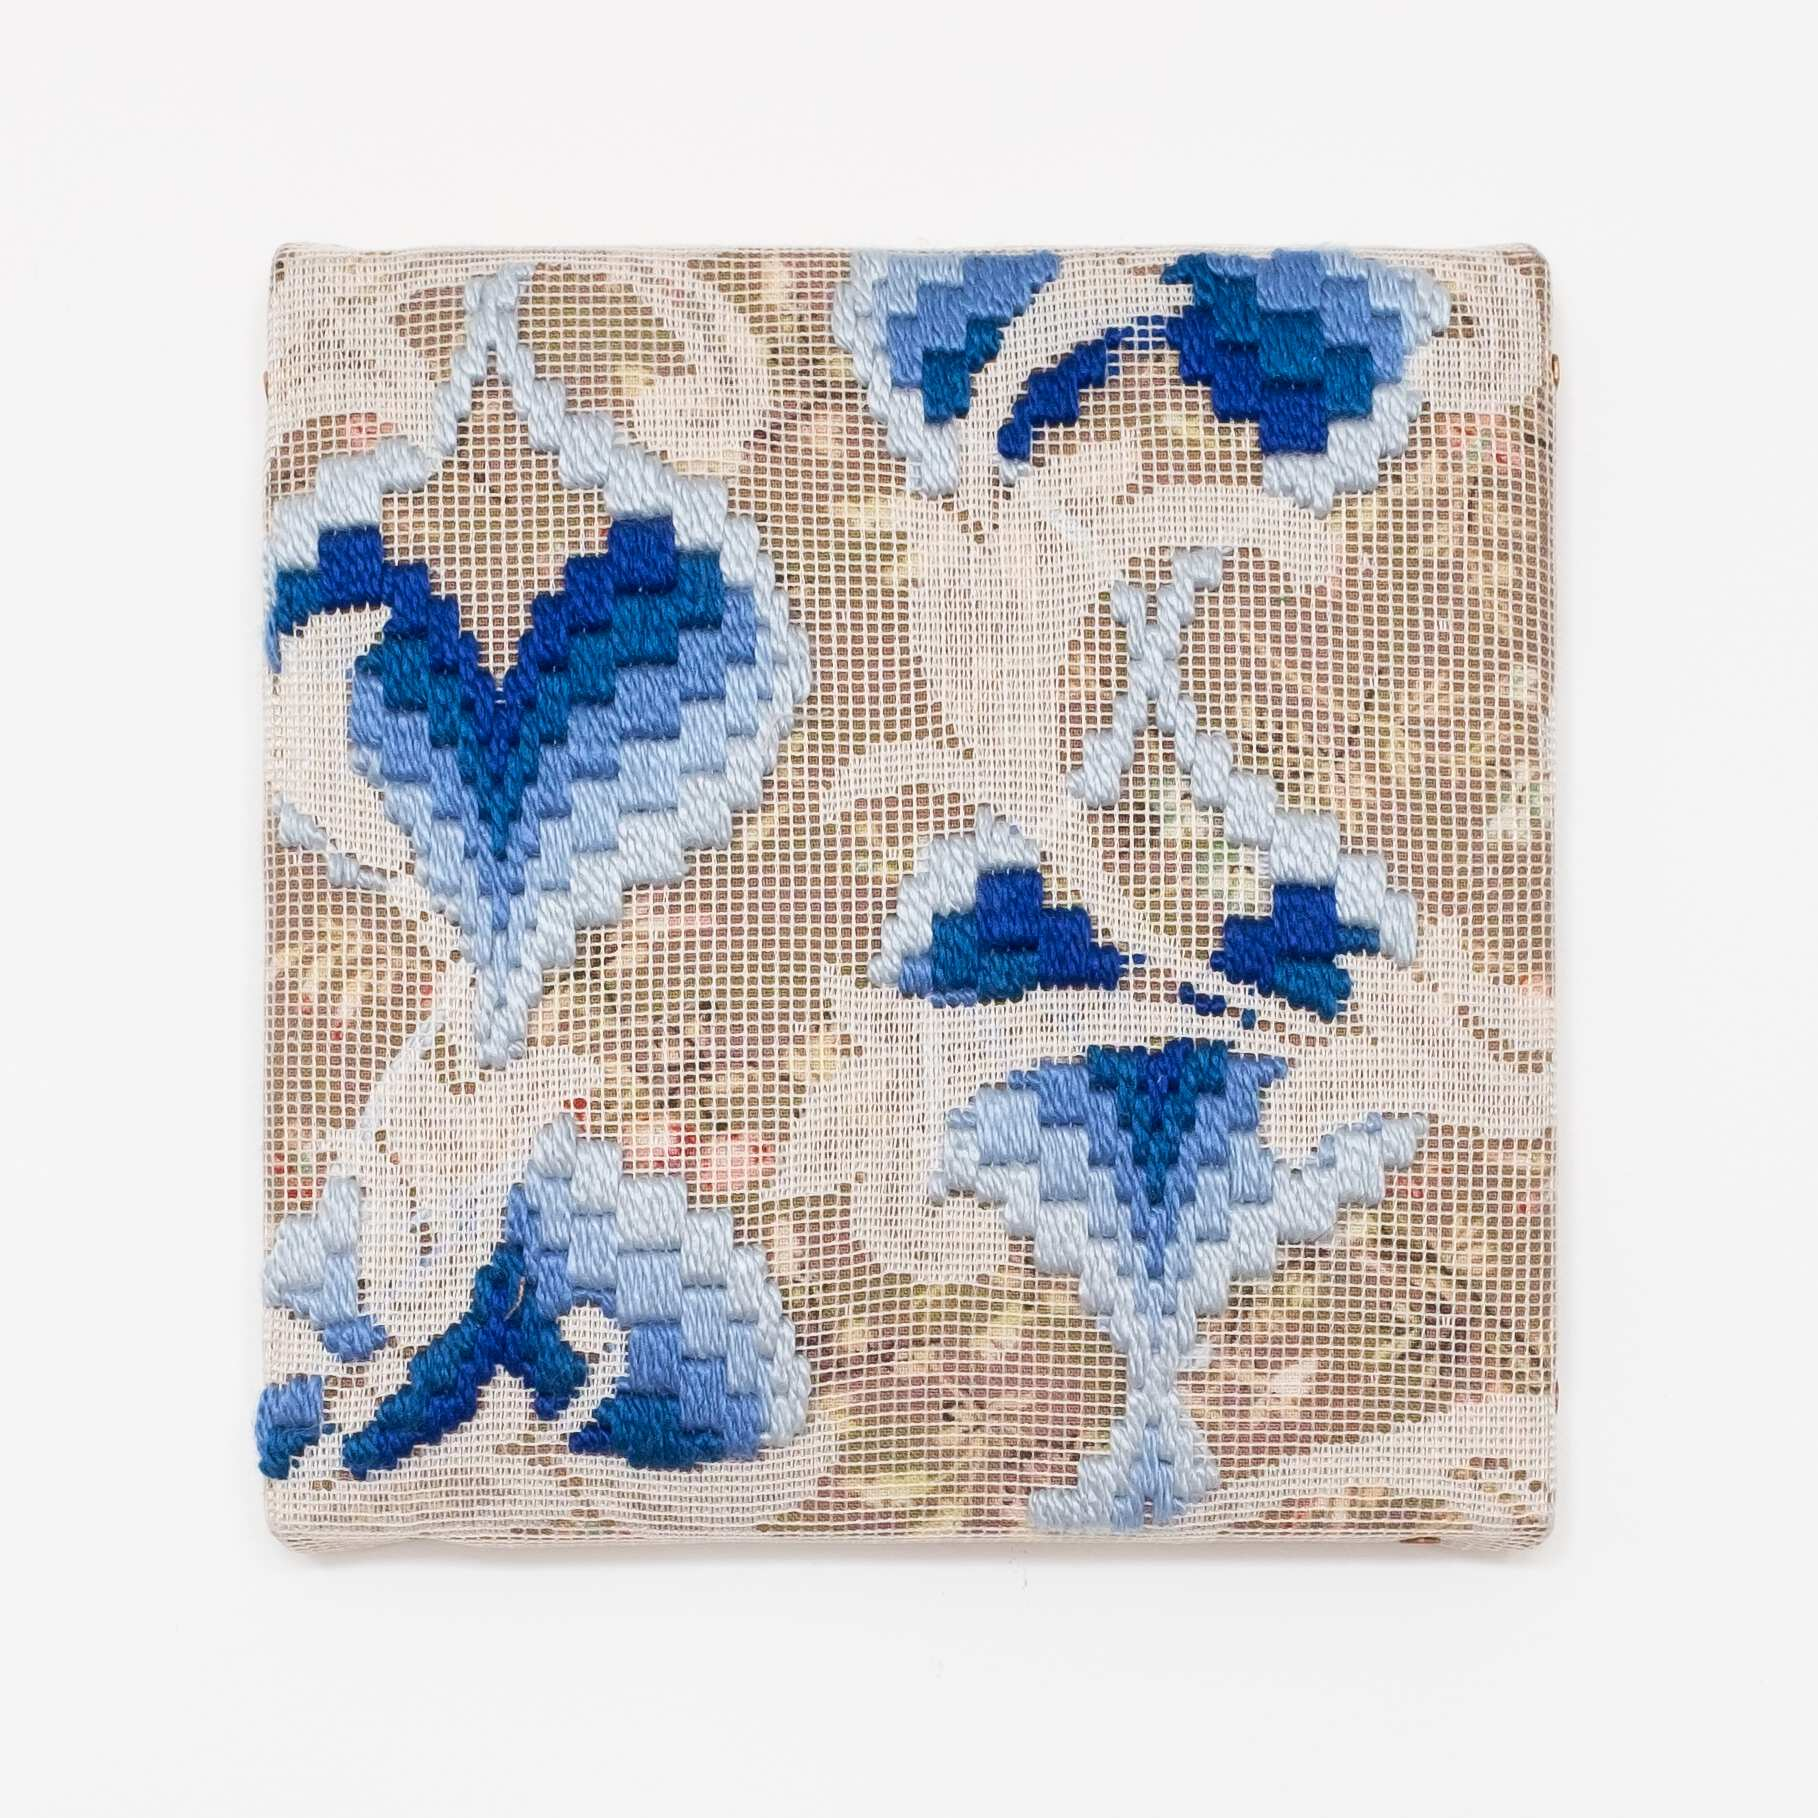 Triple-layer gather-gusset [blue hearts], Hand-embroidered silk on lace over fabric, 2019